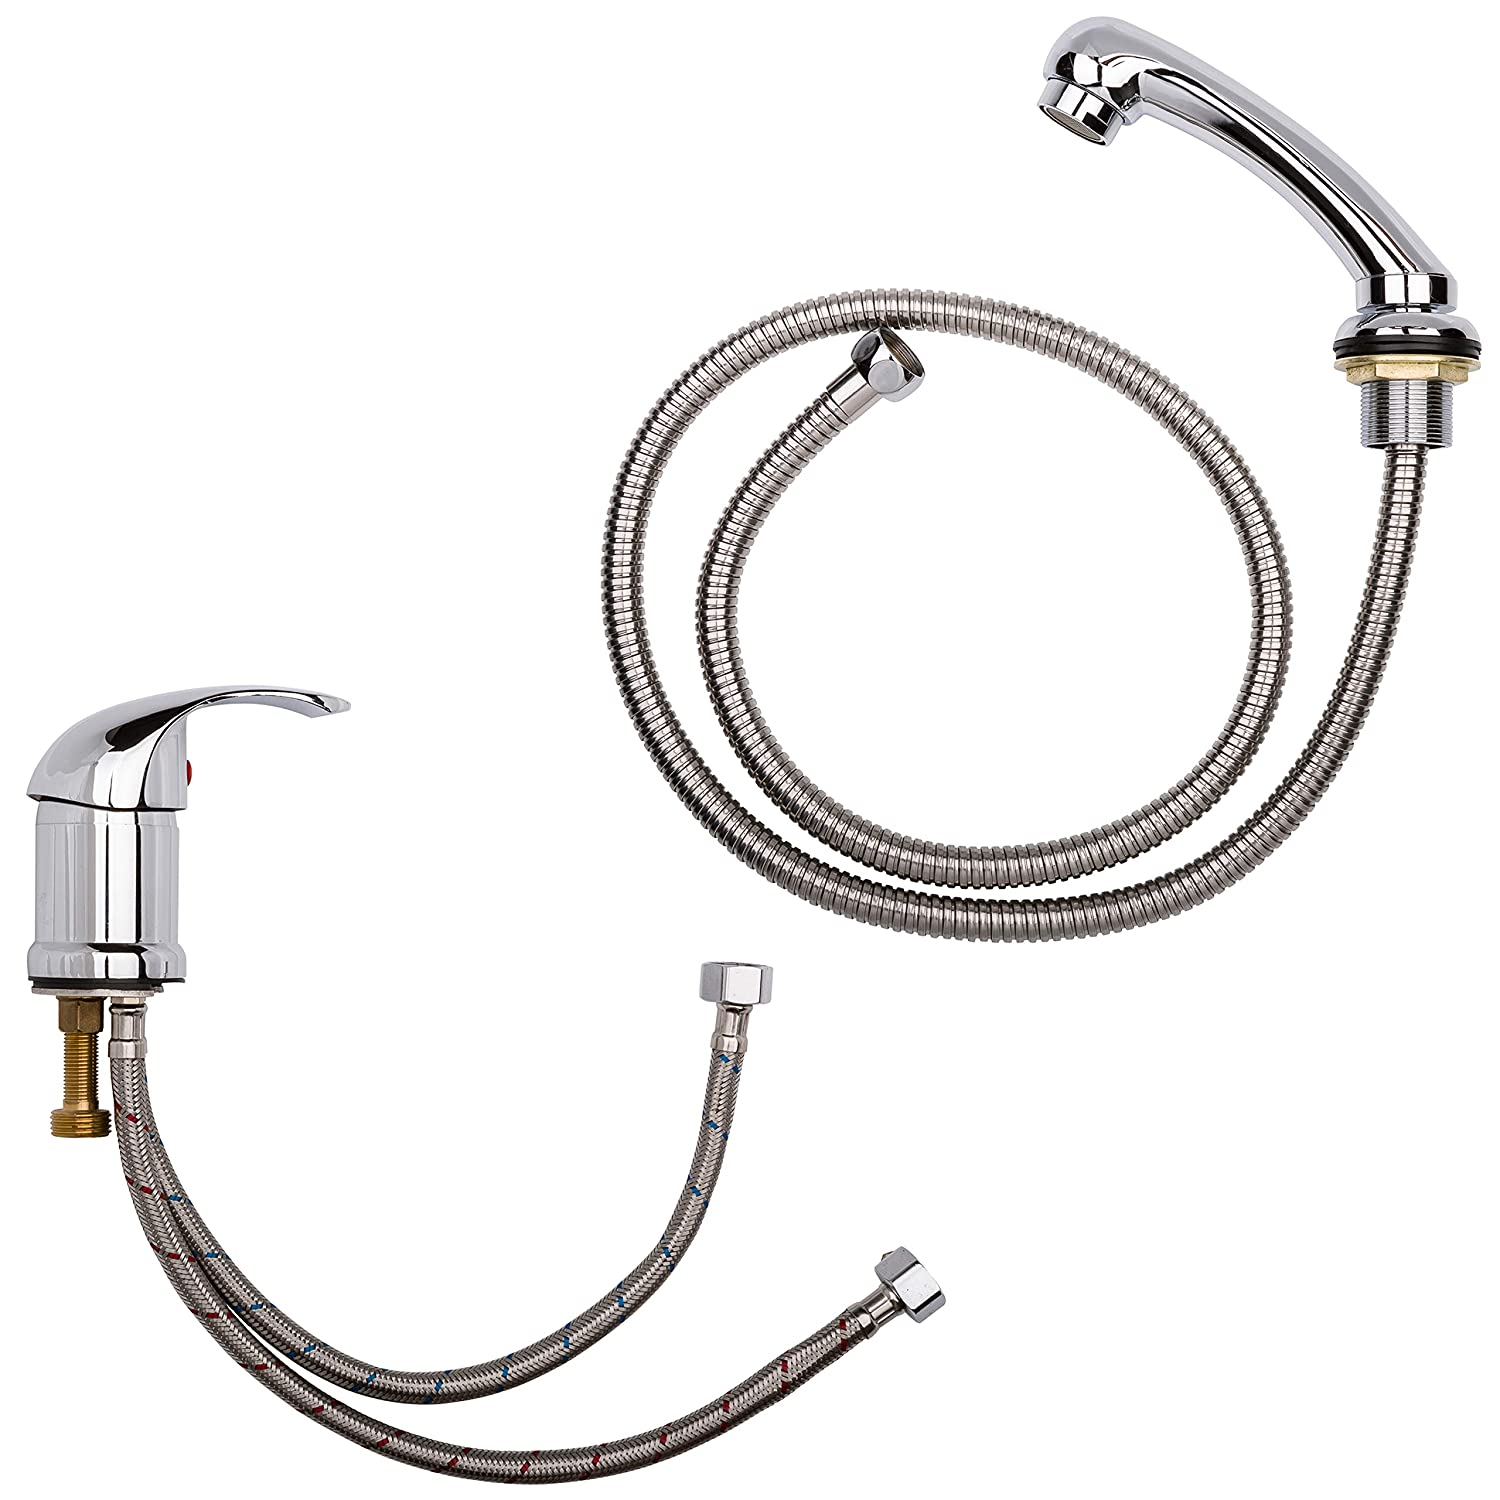 Staboos Professional Mixer tap and Hand Shower, Premium Quality Suitable for Most Hairdressers Washing Chairs and Reverse washers